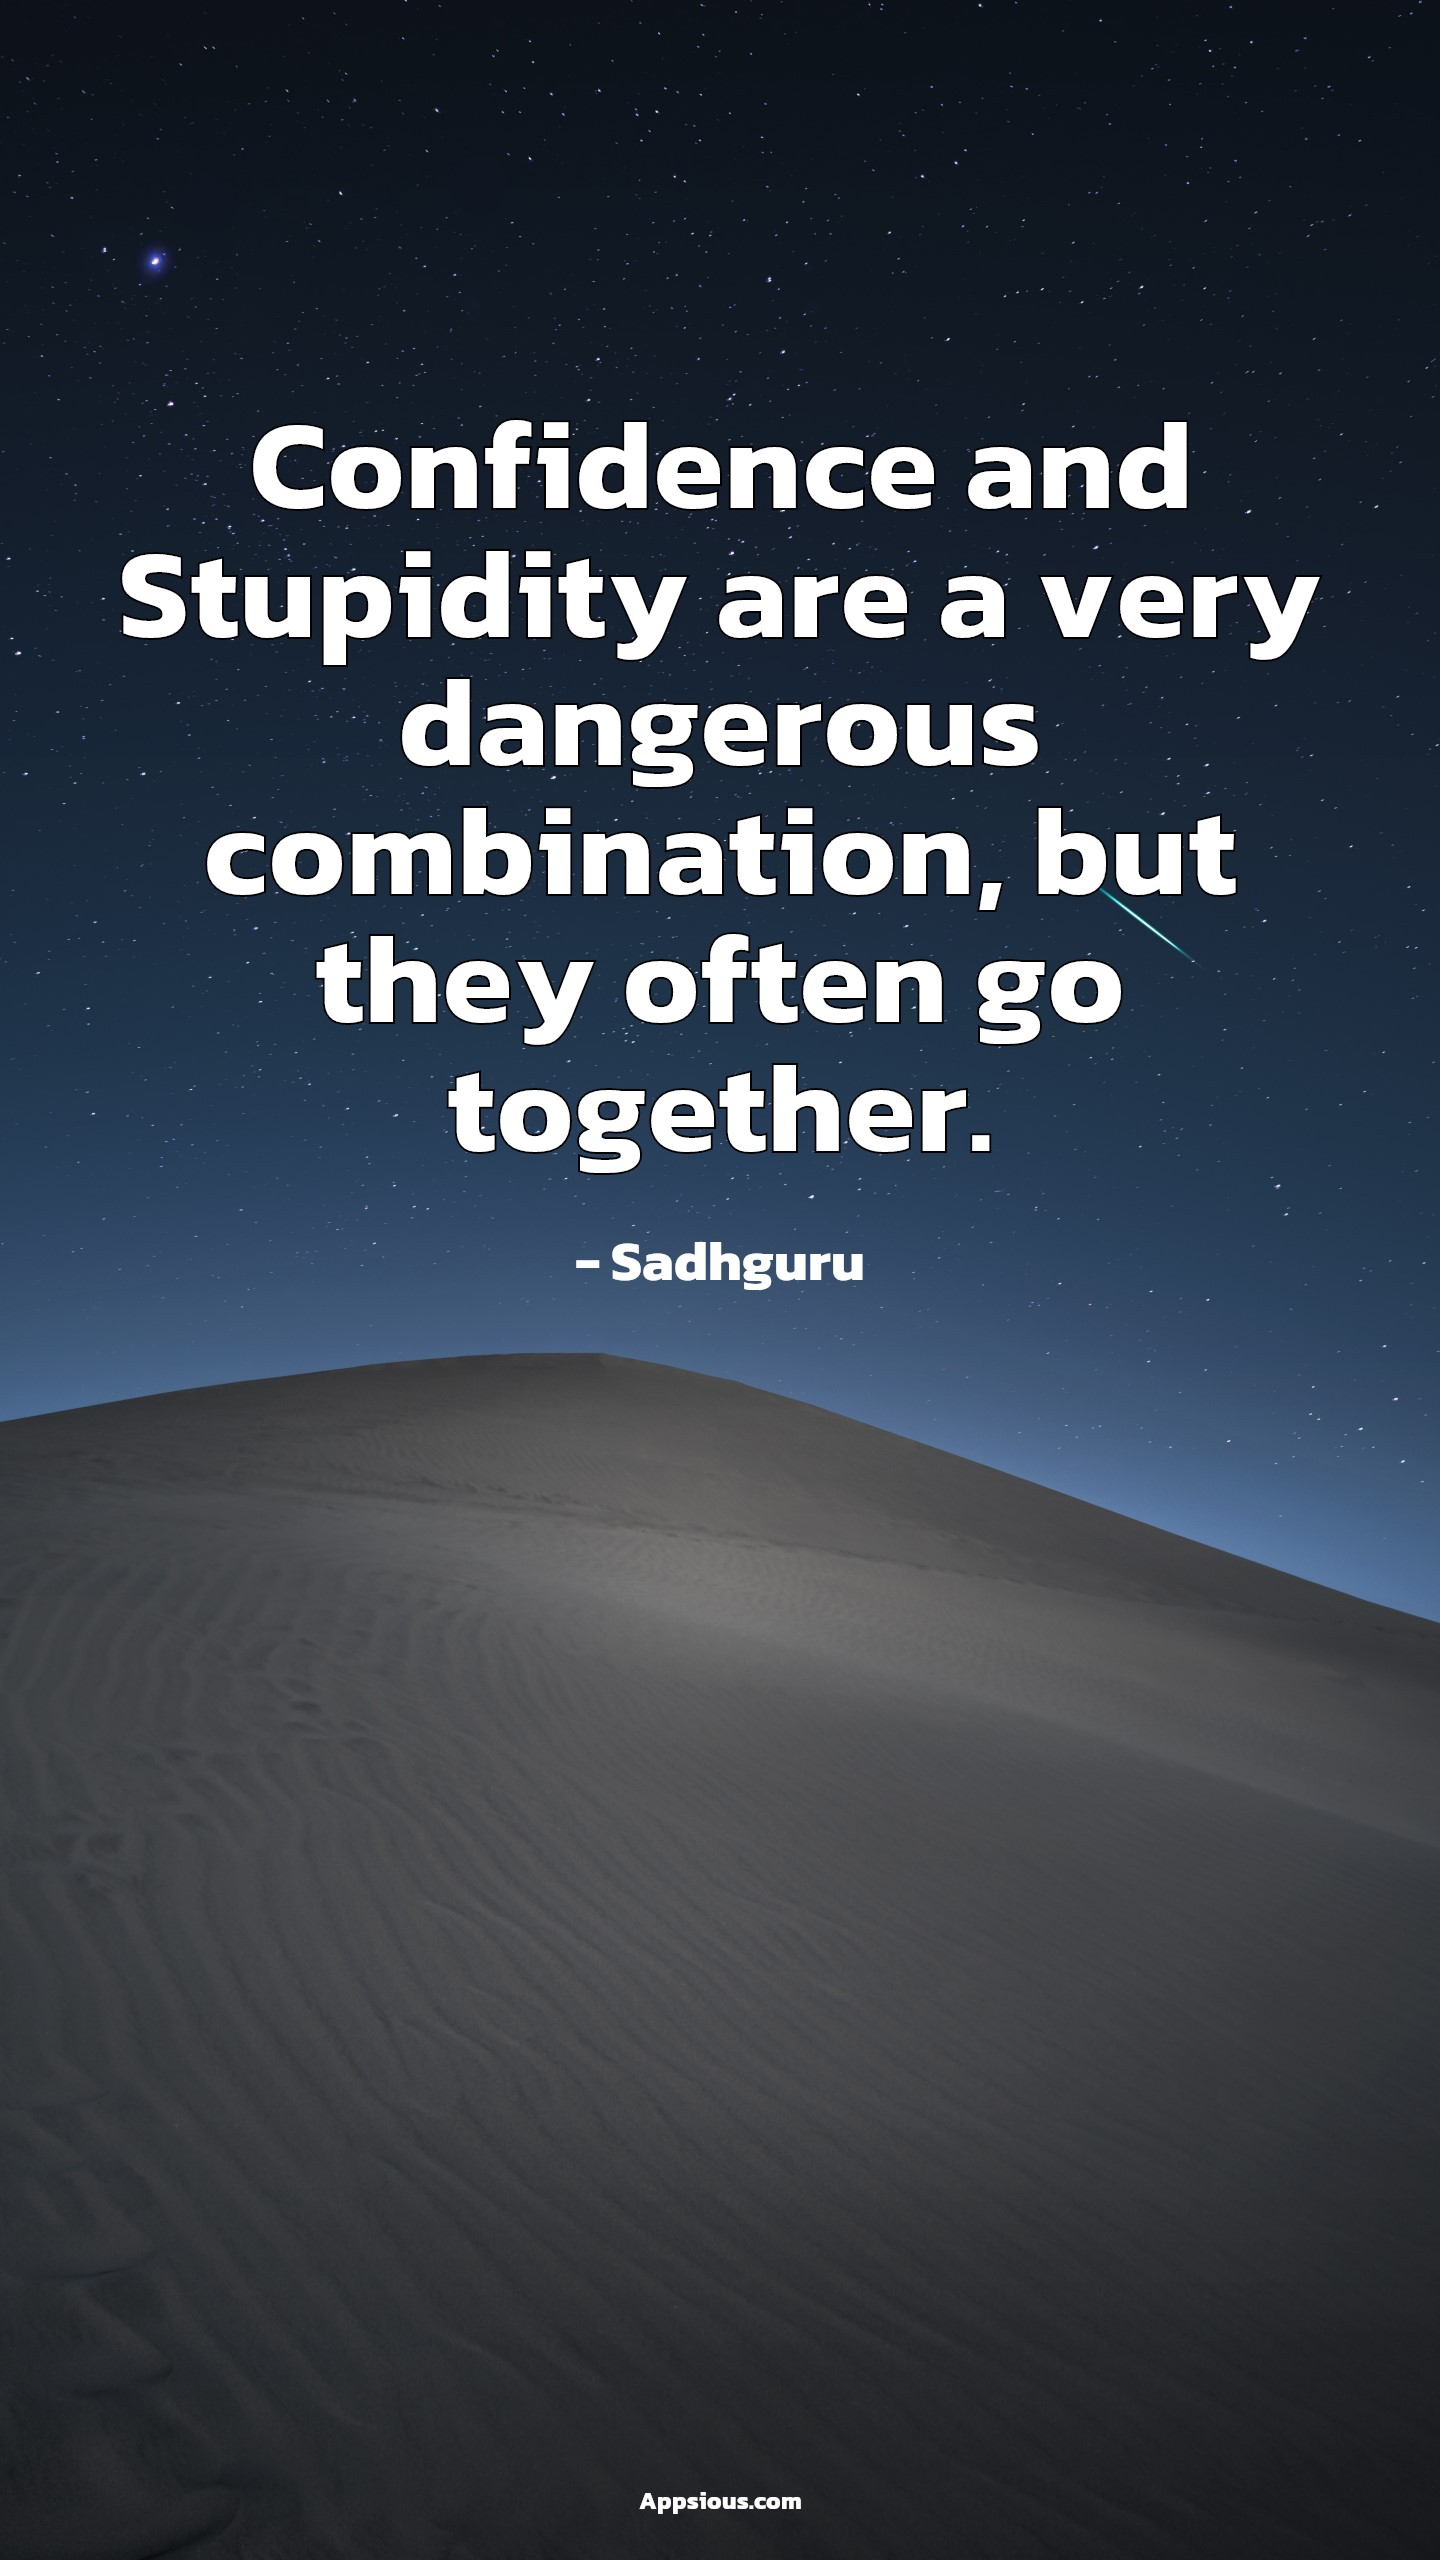 Confidence and Stupidity are a very dangerous combination, but they often go together.